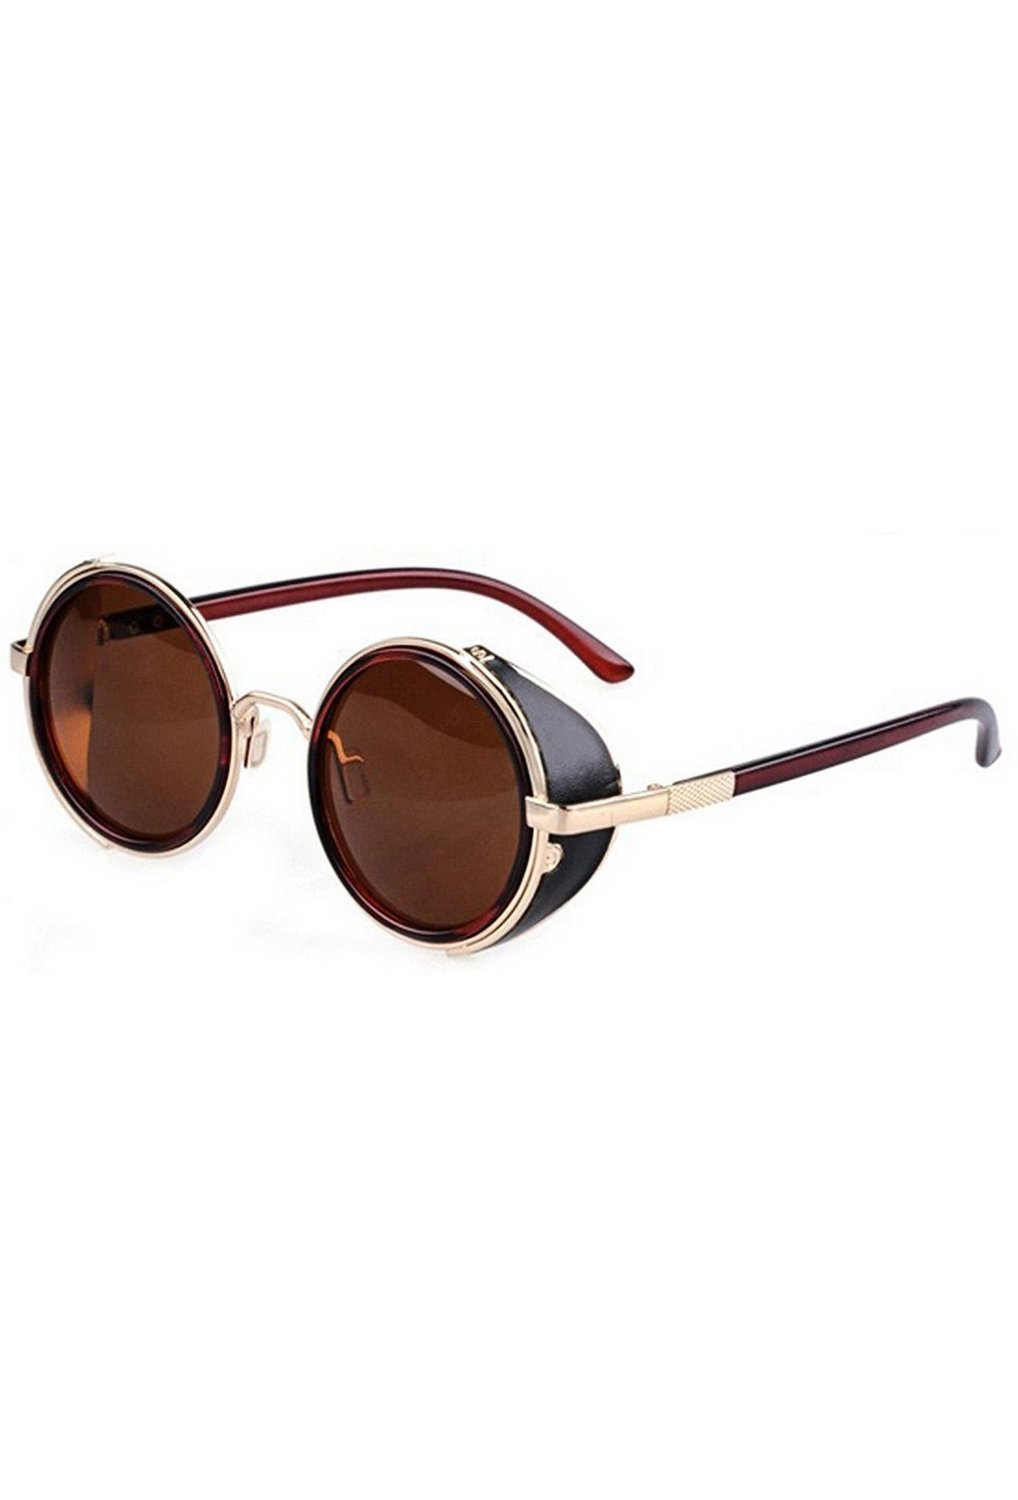 TOOGOO(R)80's Vintage Style Classic Round Steampunk Sunglasses-Dark Brown with Gold Edge